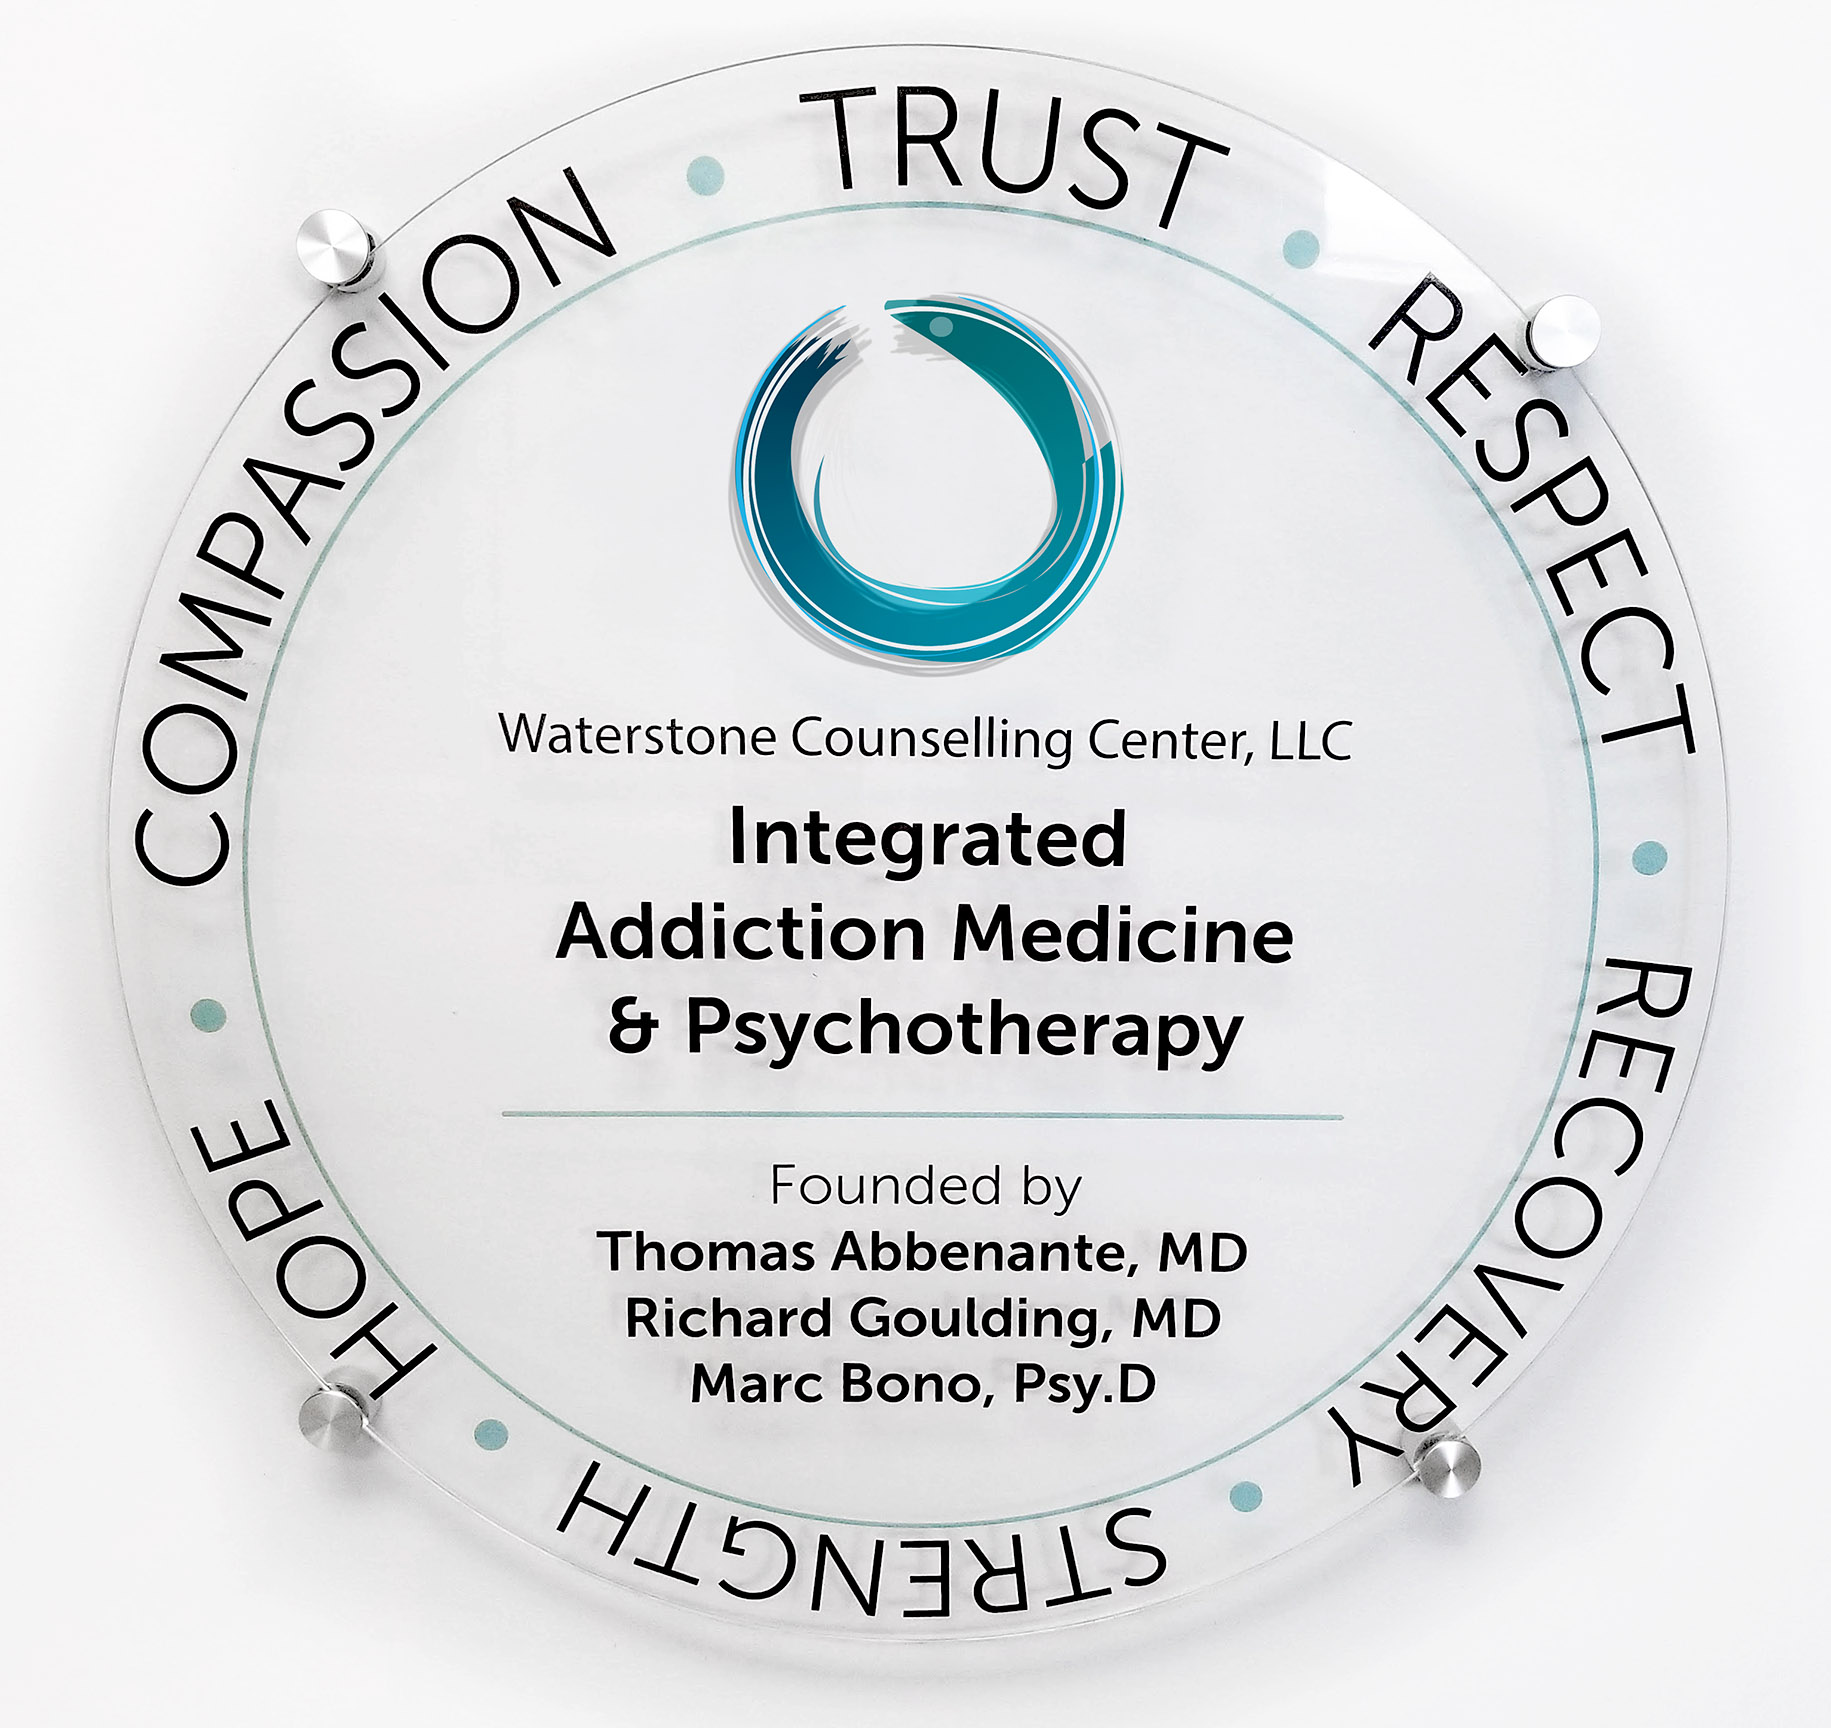 Waterstone Logo with Company description. Trust, Respect, Recovery, Strength, Hope, Compassion.